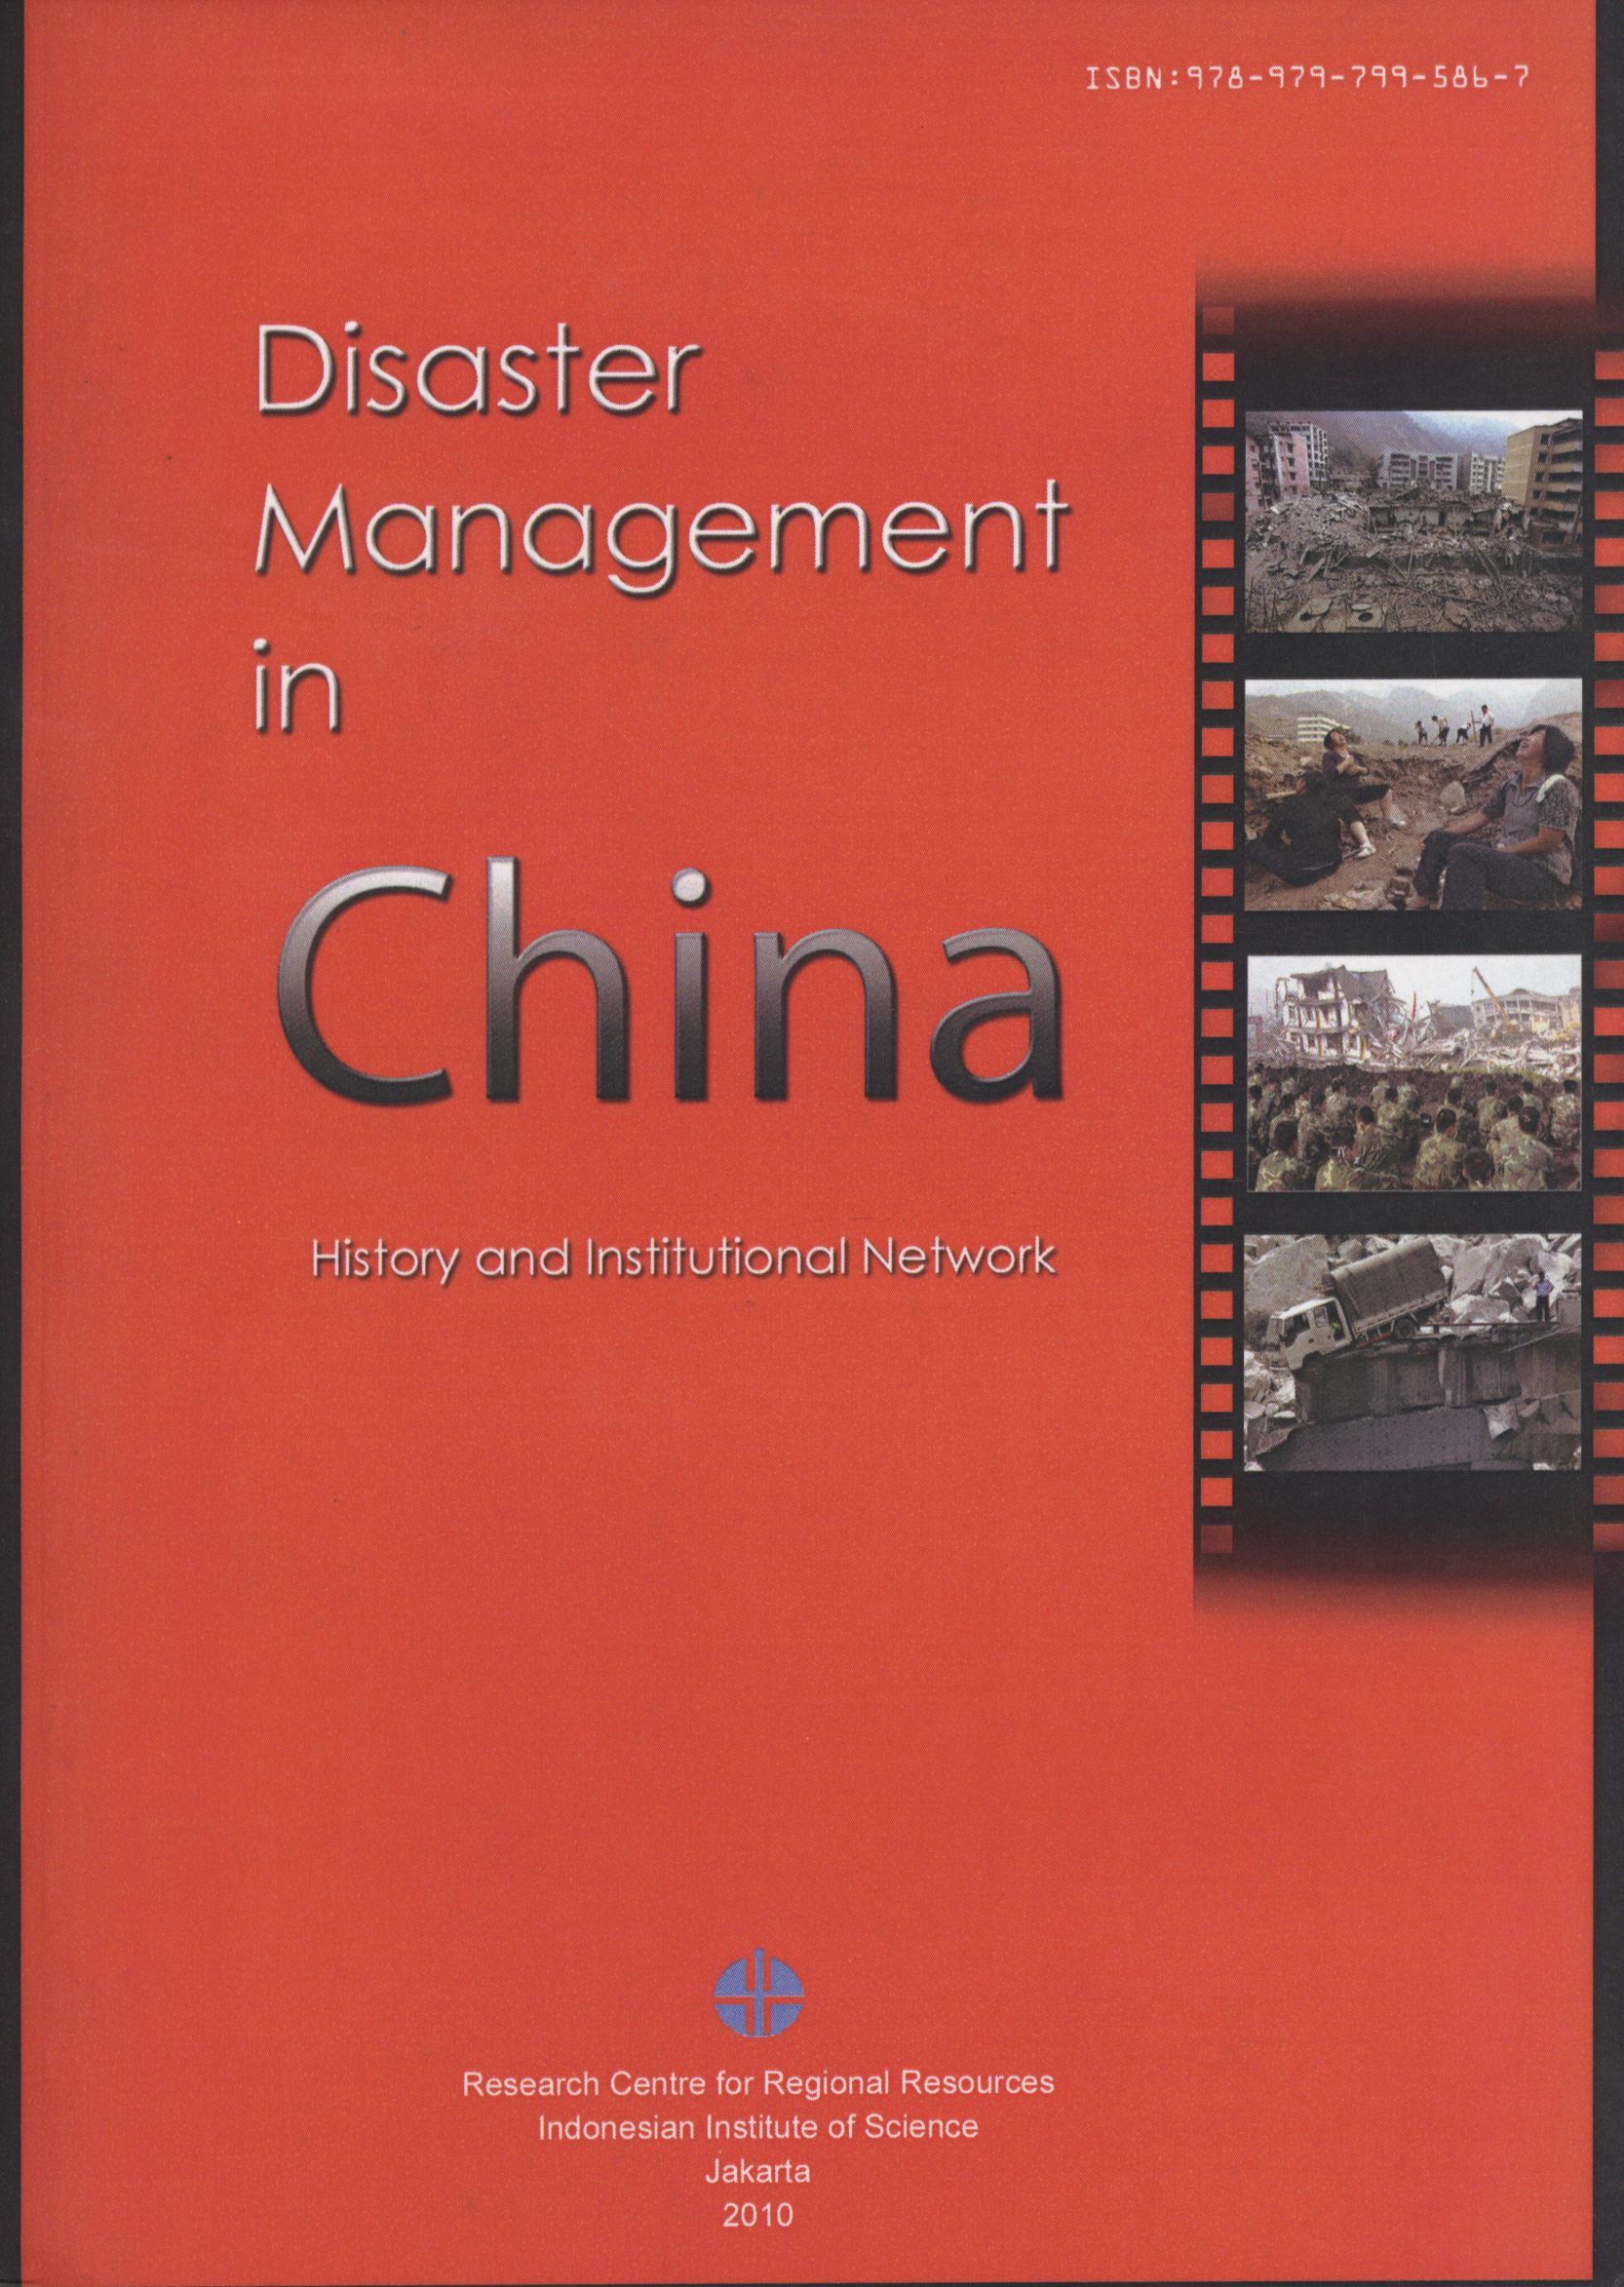 Disaster Management in China